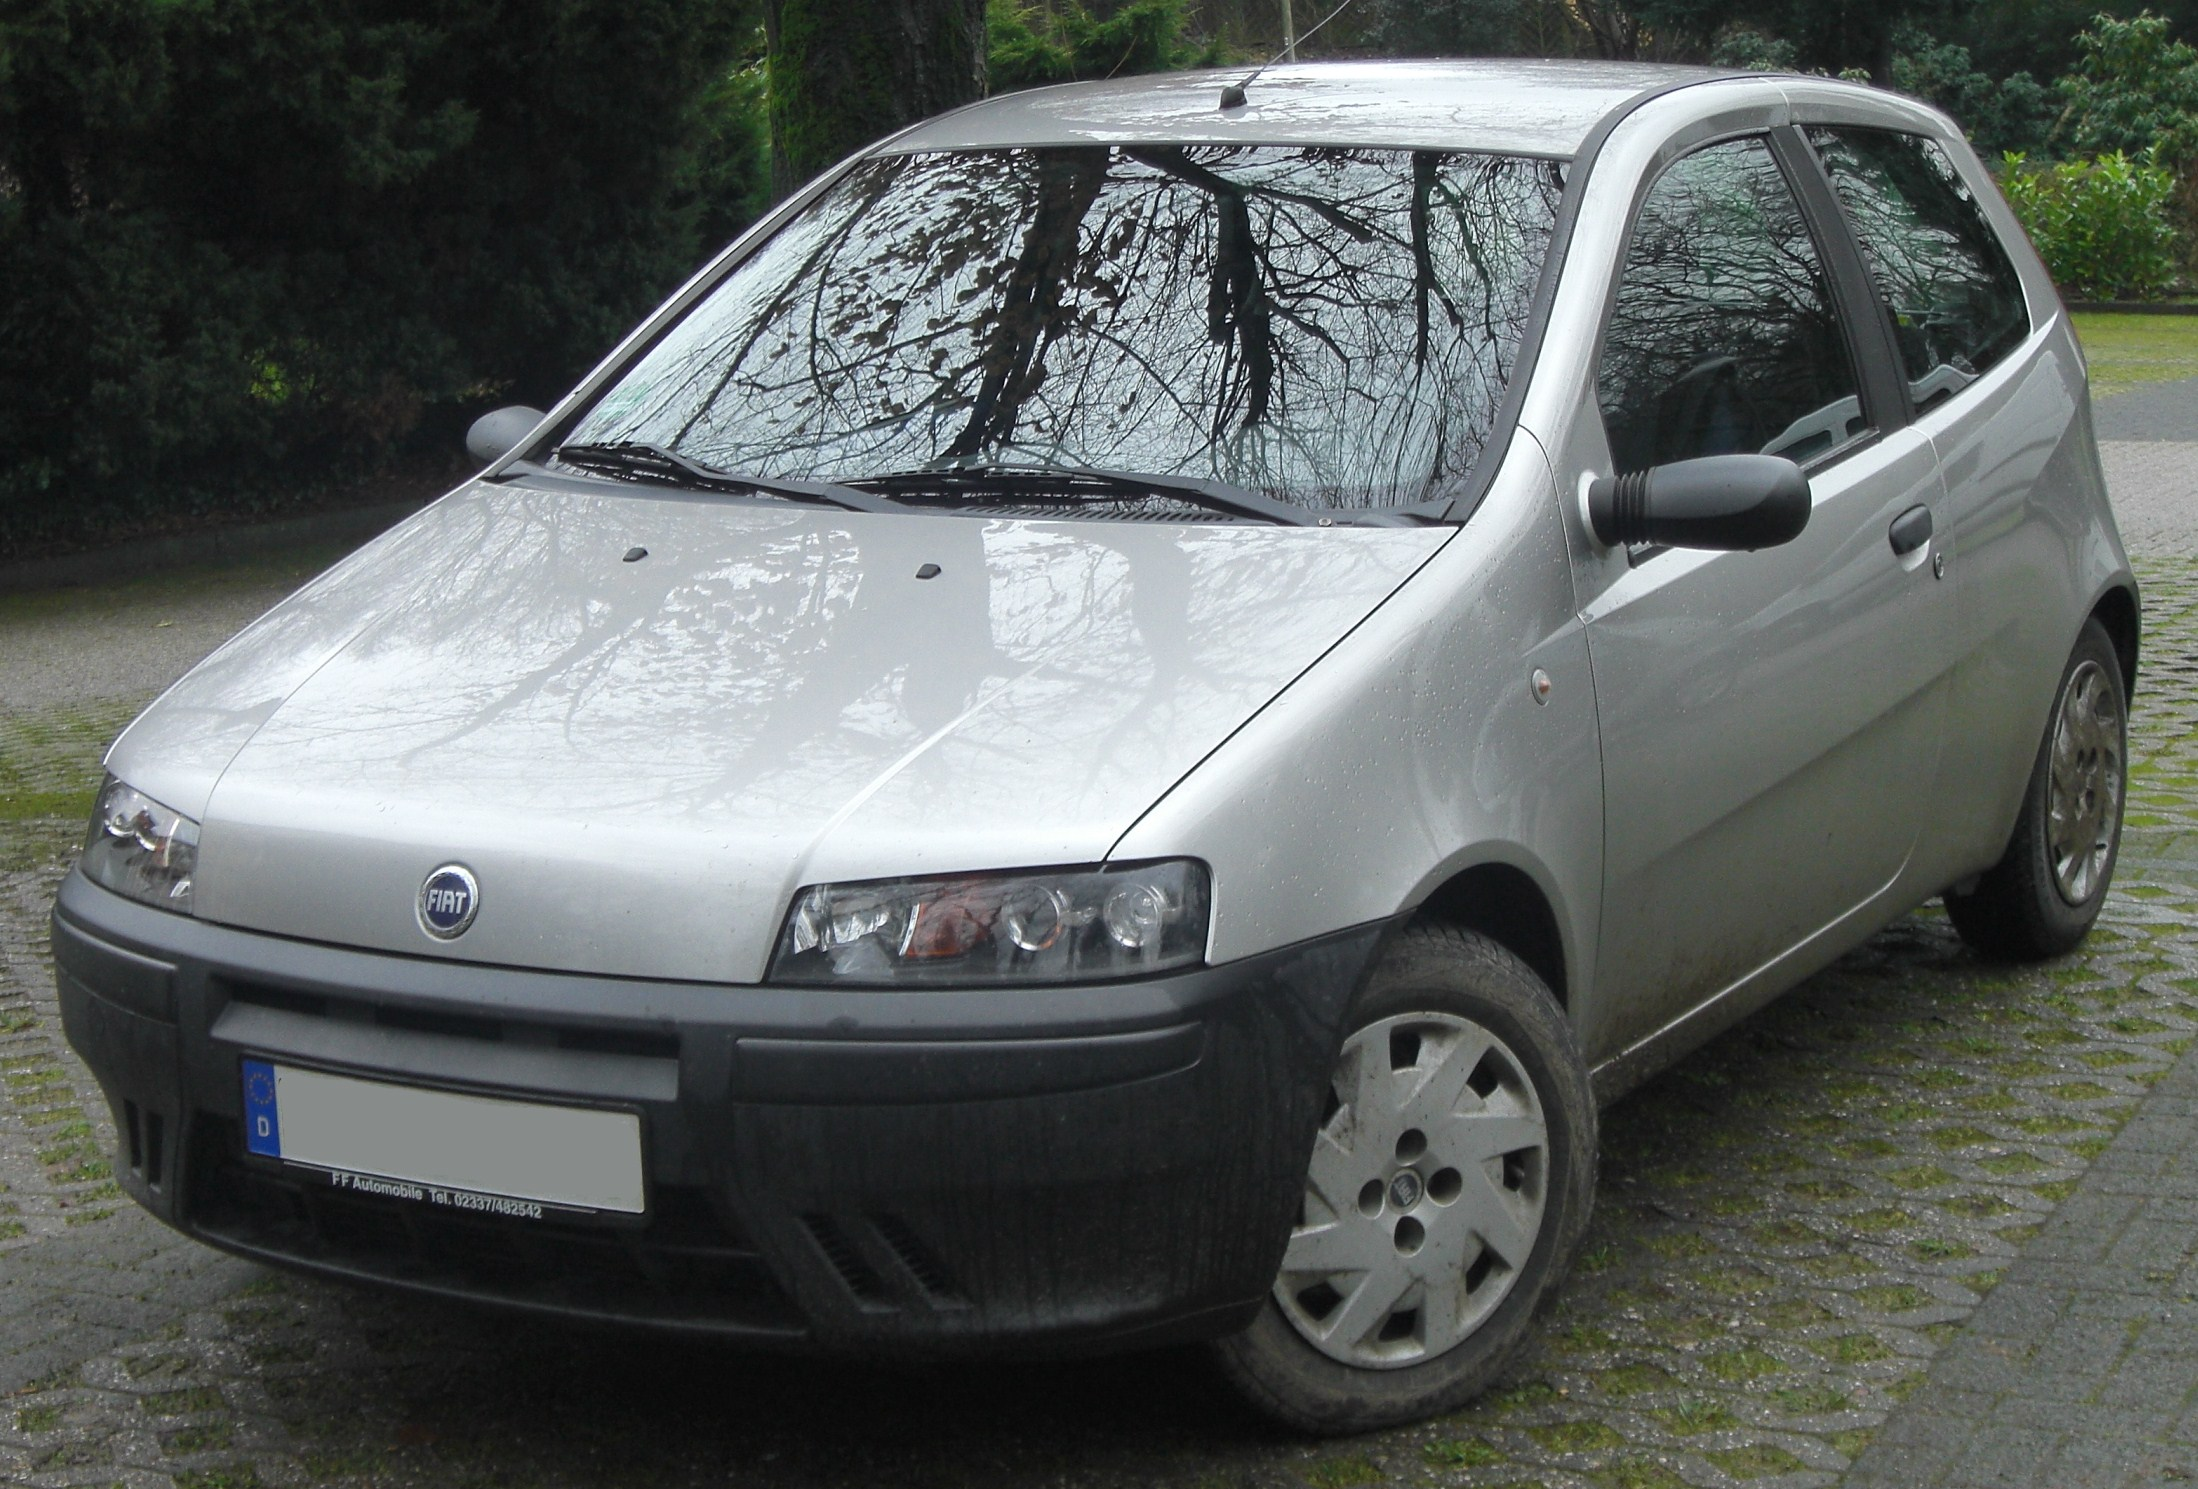 Fiat Punto II 1999 - 2003 Hatchback 3 door #7